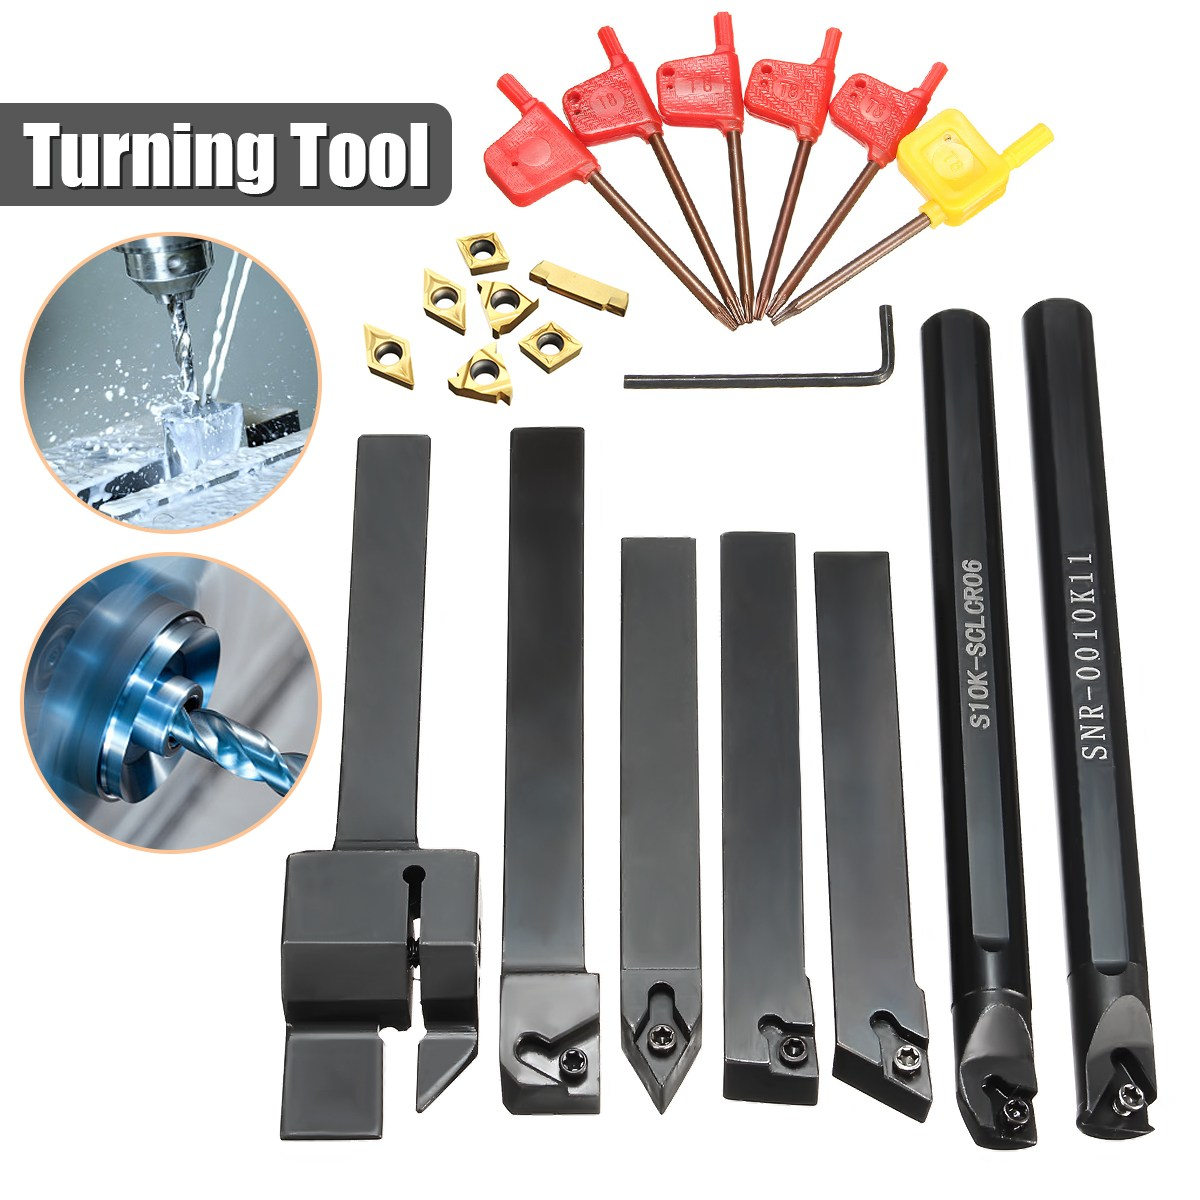 7pcs 10mm Boring Bar Lathe Turning Tool Holder with Gold Inserts with 7pcs T8 Wrenches ser1616h16 holder external thread turning tool boring bar holder with 10pcs 16er ag60 inserts